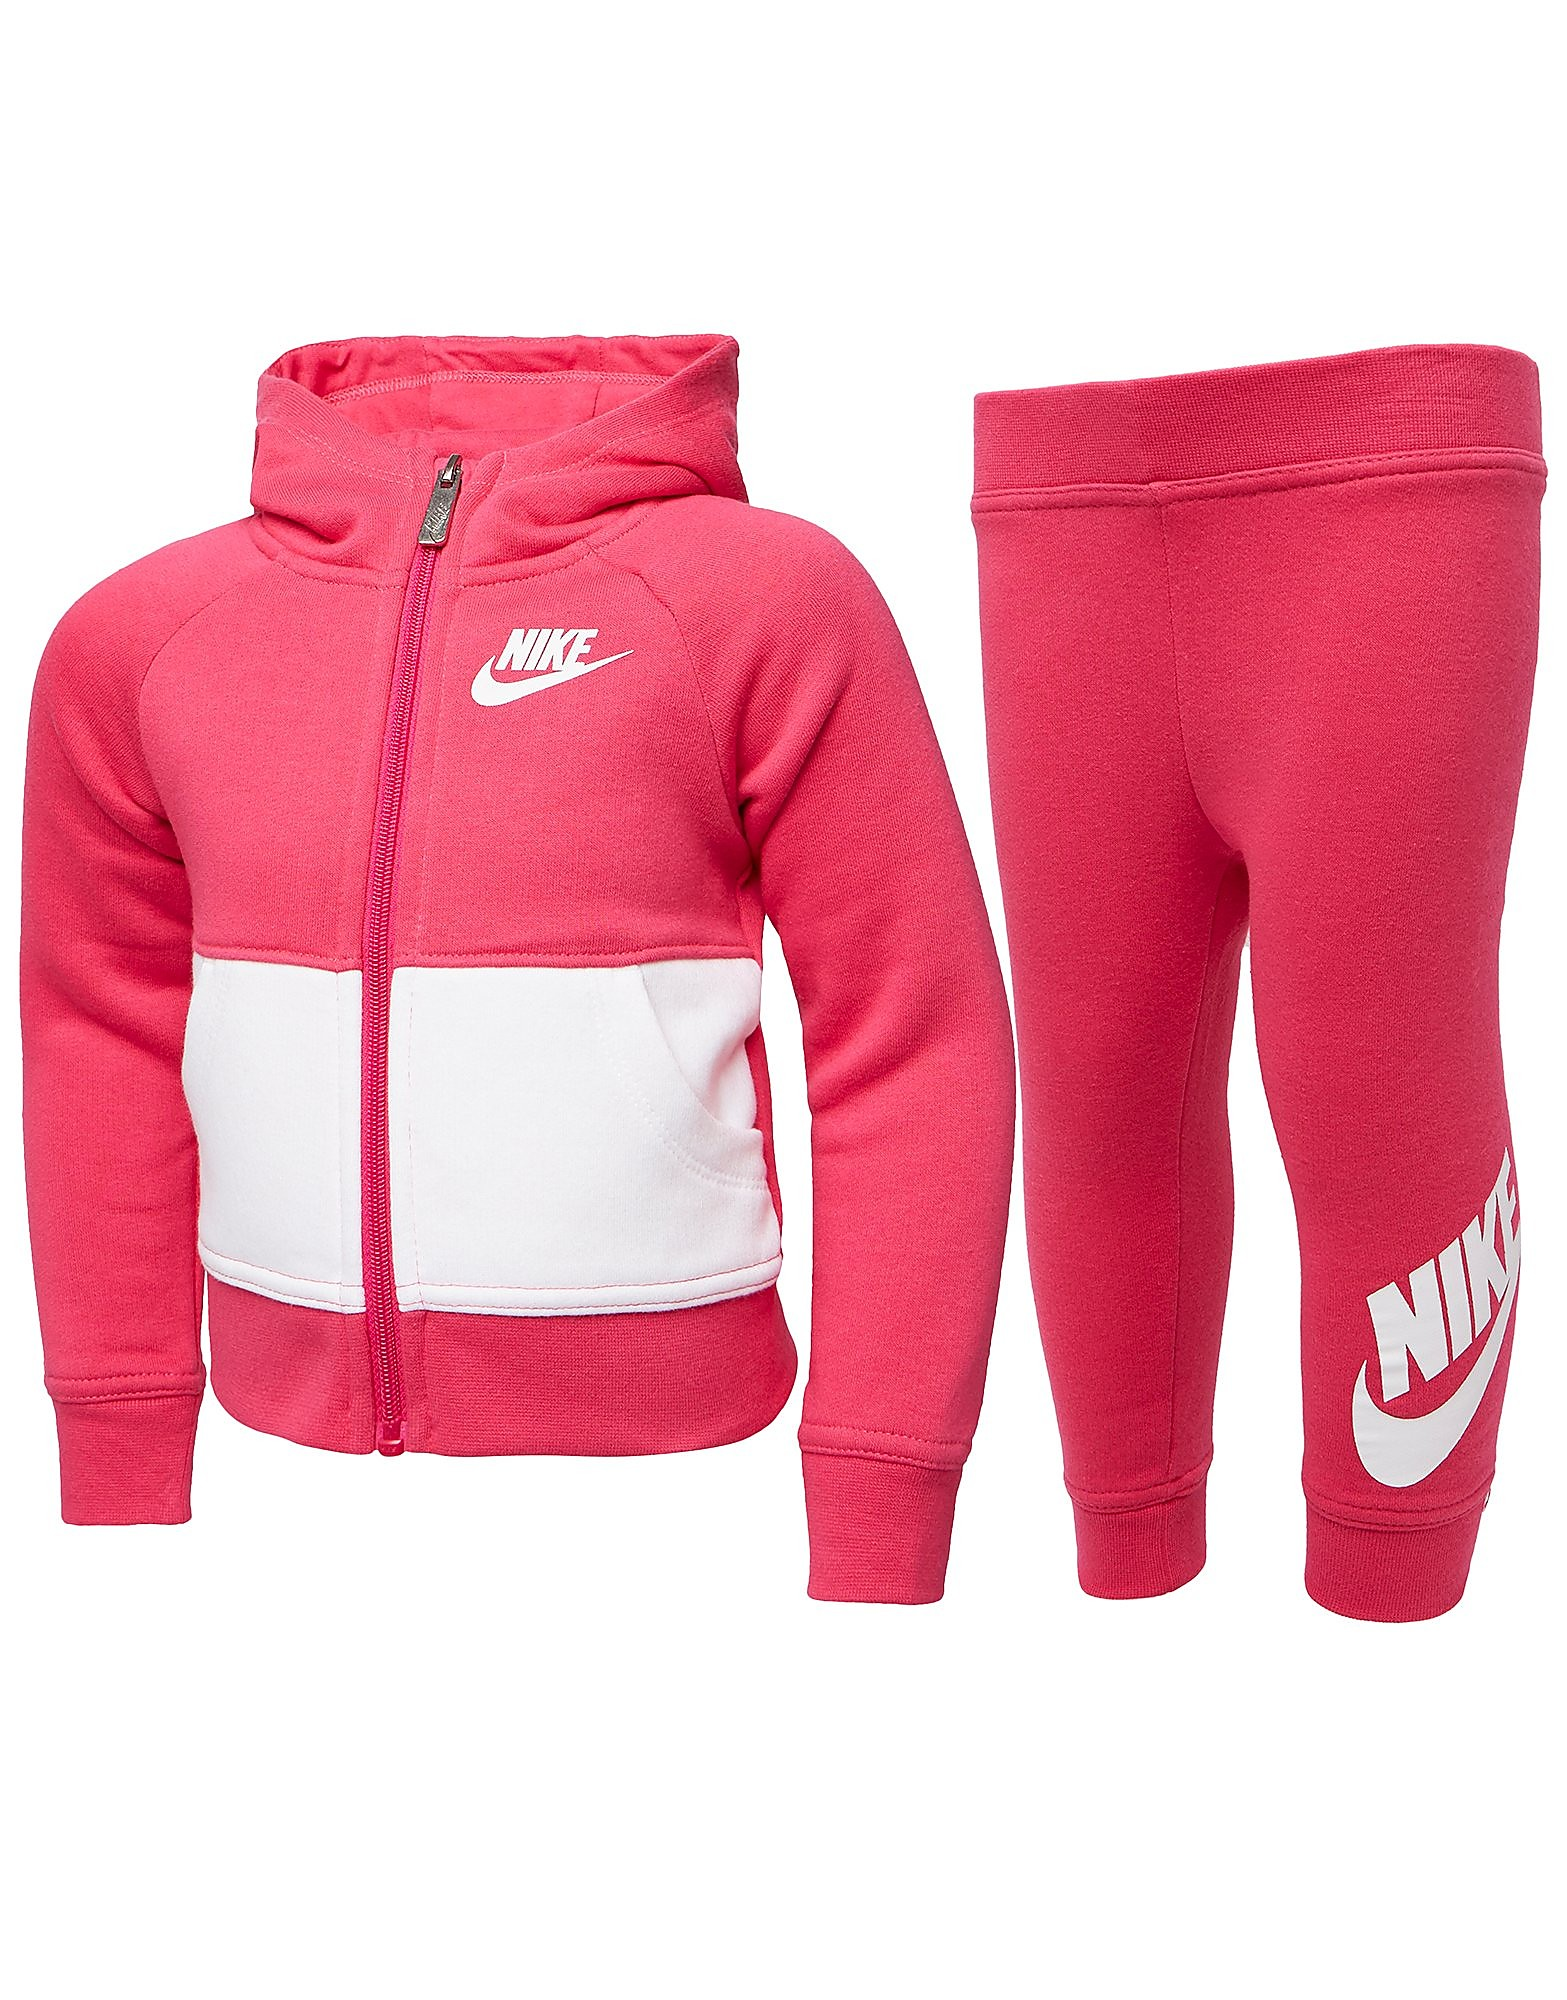 Nike Ensemble Bébé Girls' Futura